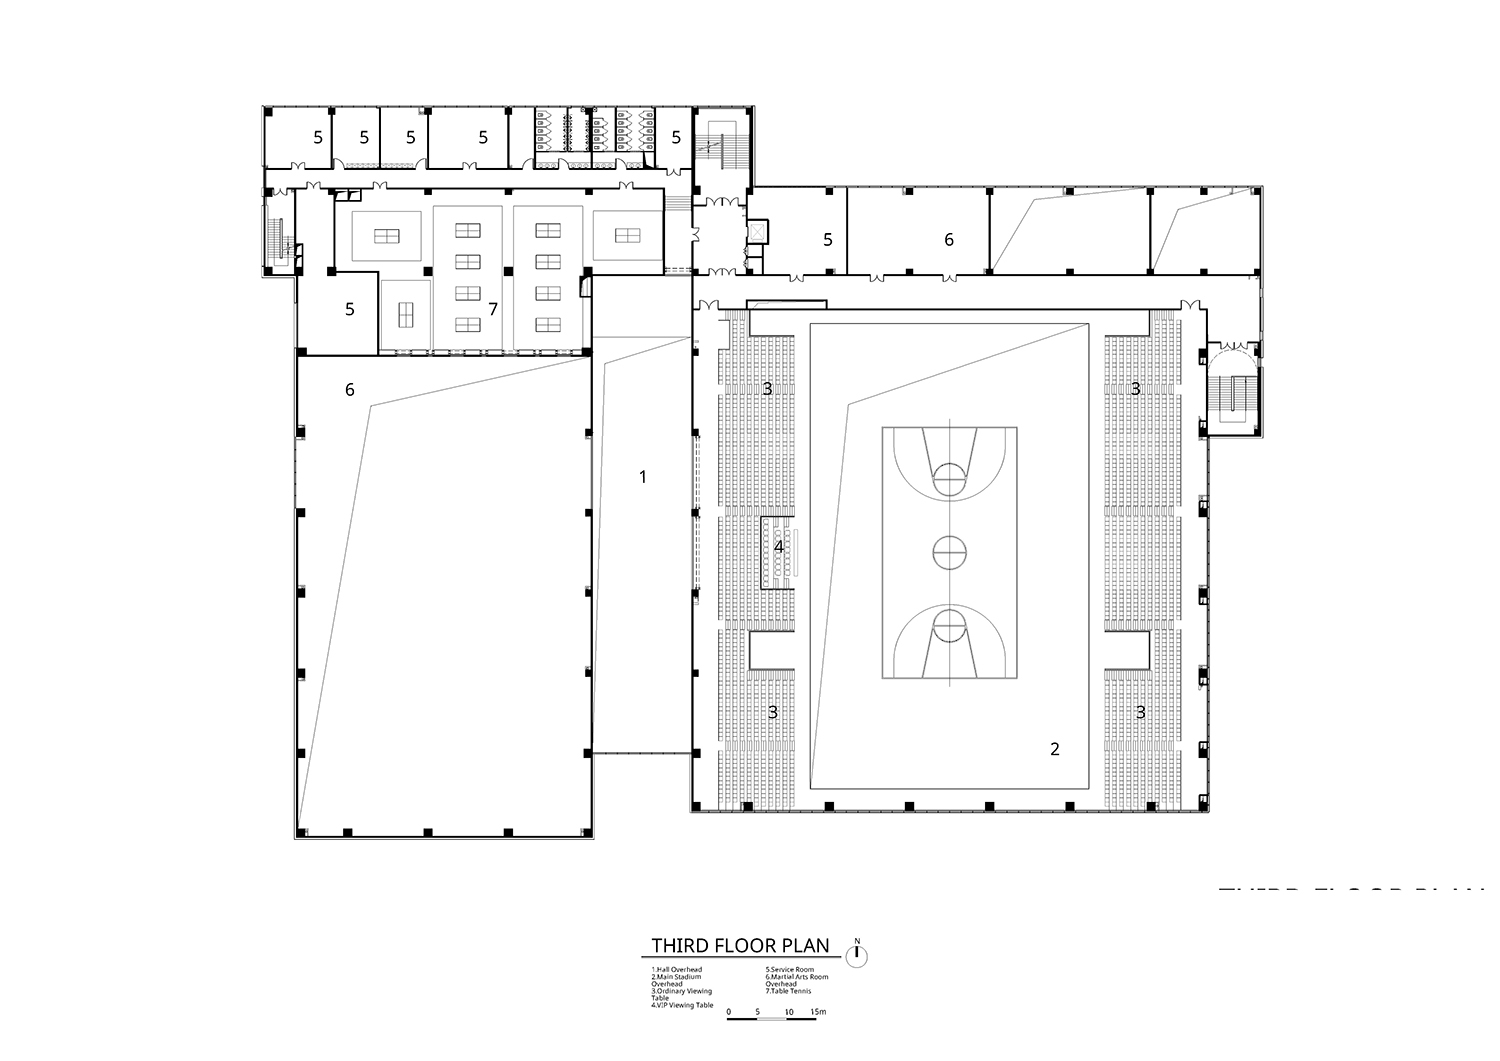 Third Floor Plan Atelier Alter Architects}